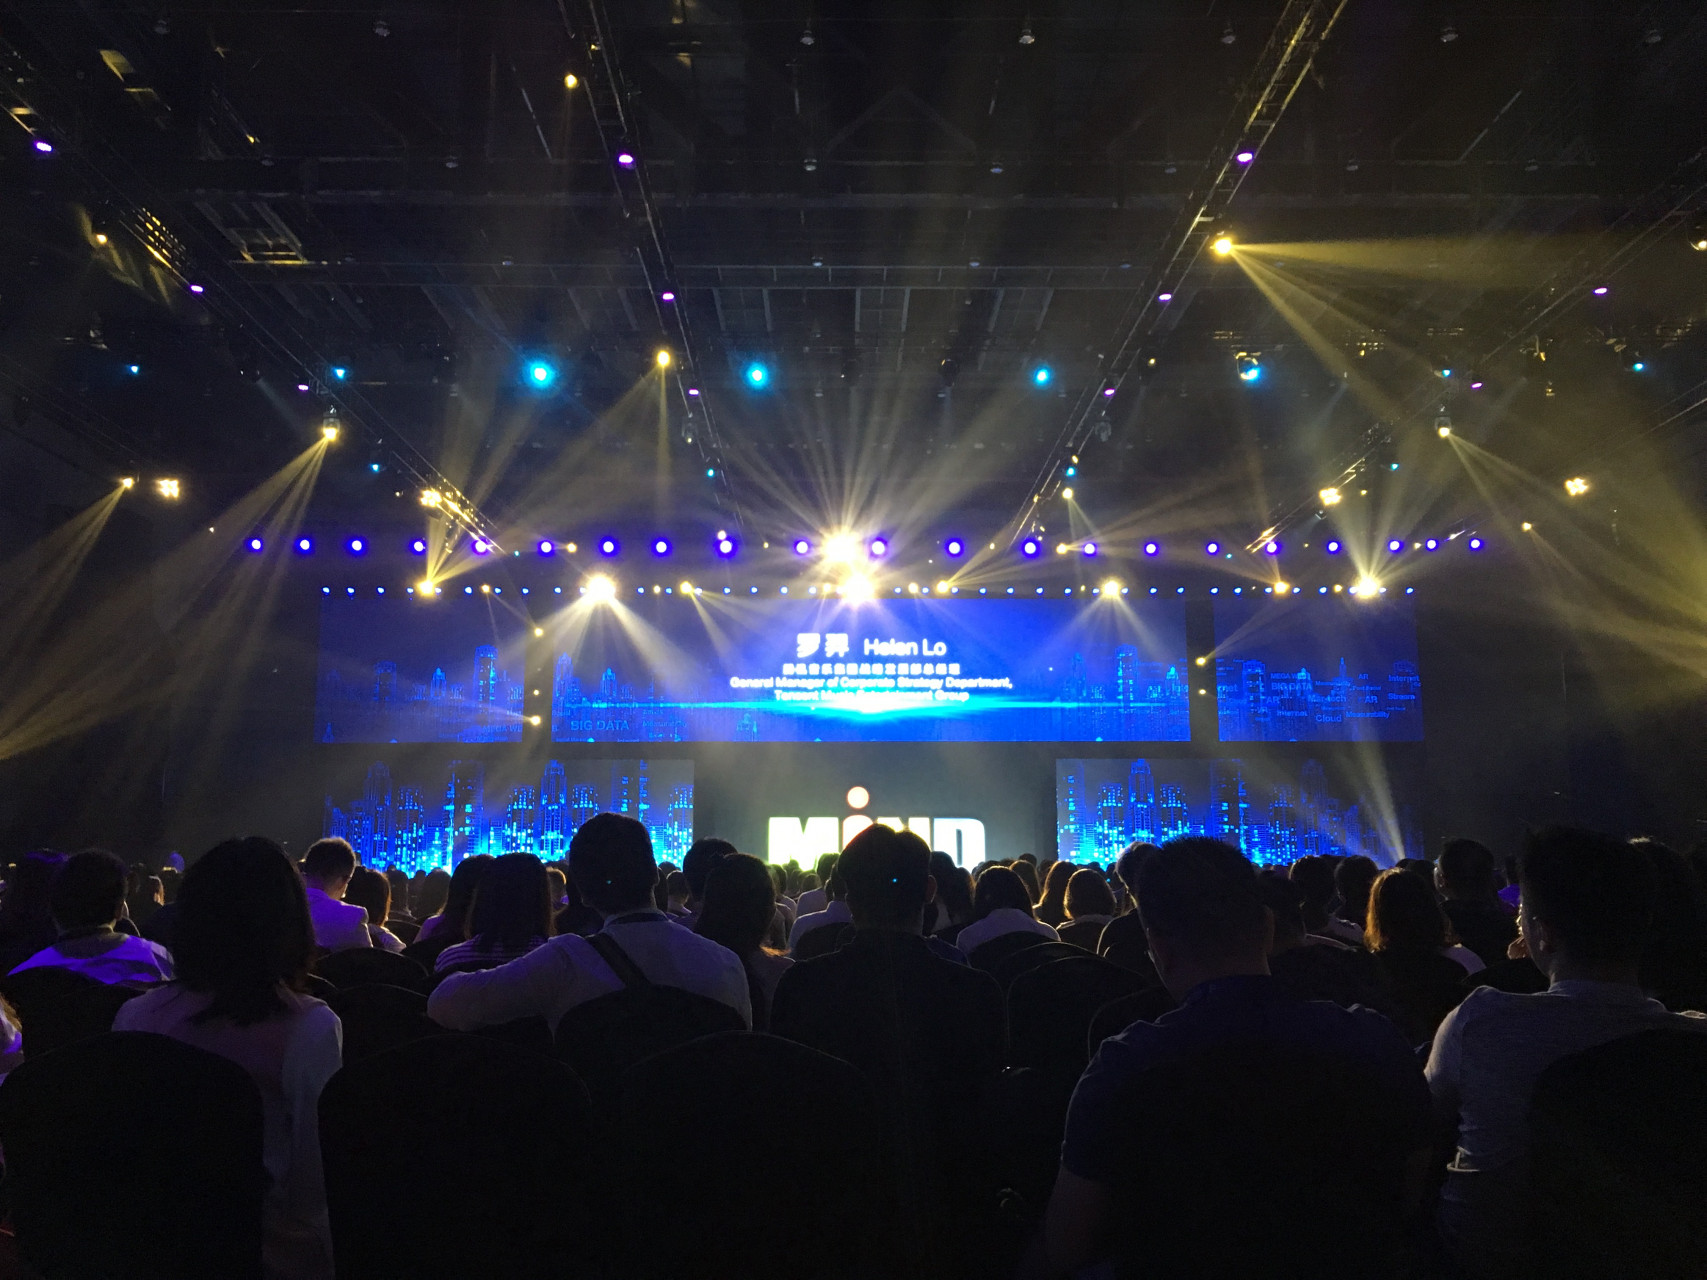 Tencent's 10th MIND conference gathered over 2,800 participants (Image Credit: TechNode)